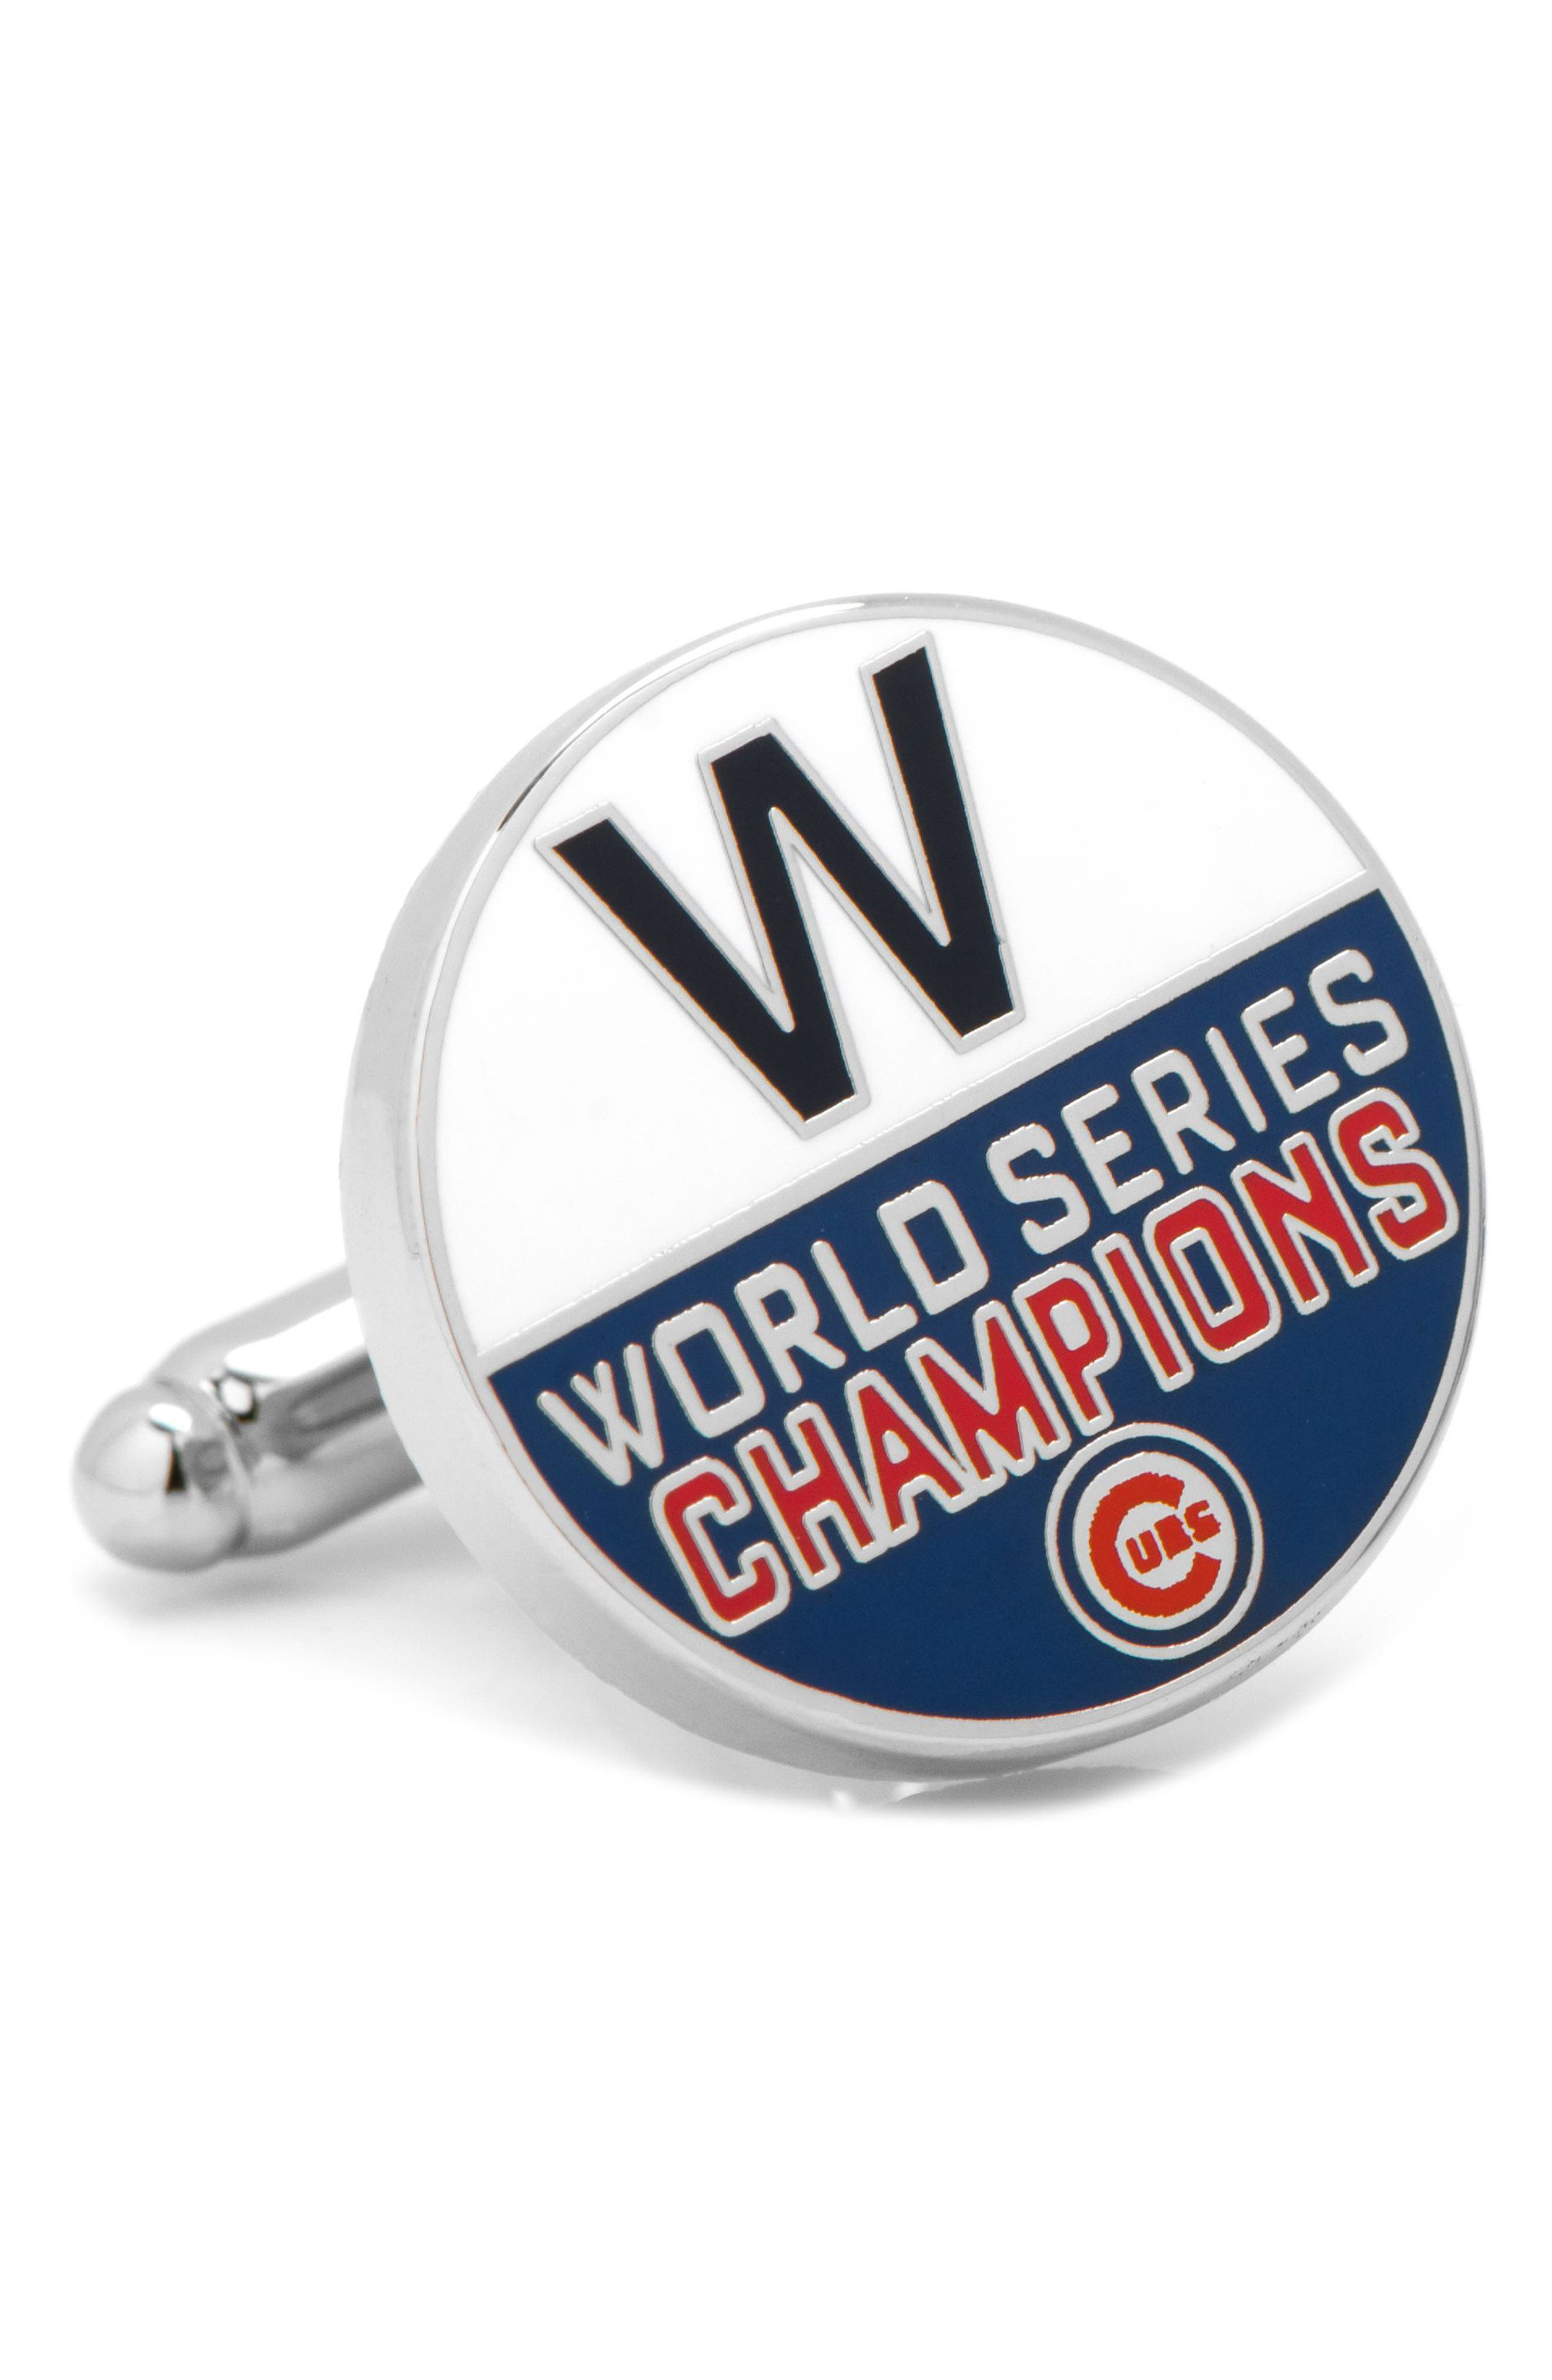 Cubs World Series Cuff Links,                             Alternate thumbnail 2, color,                             046